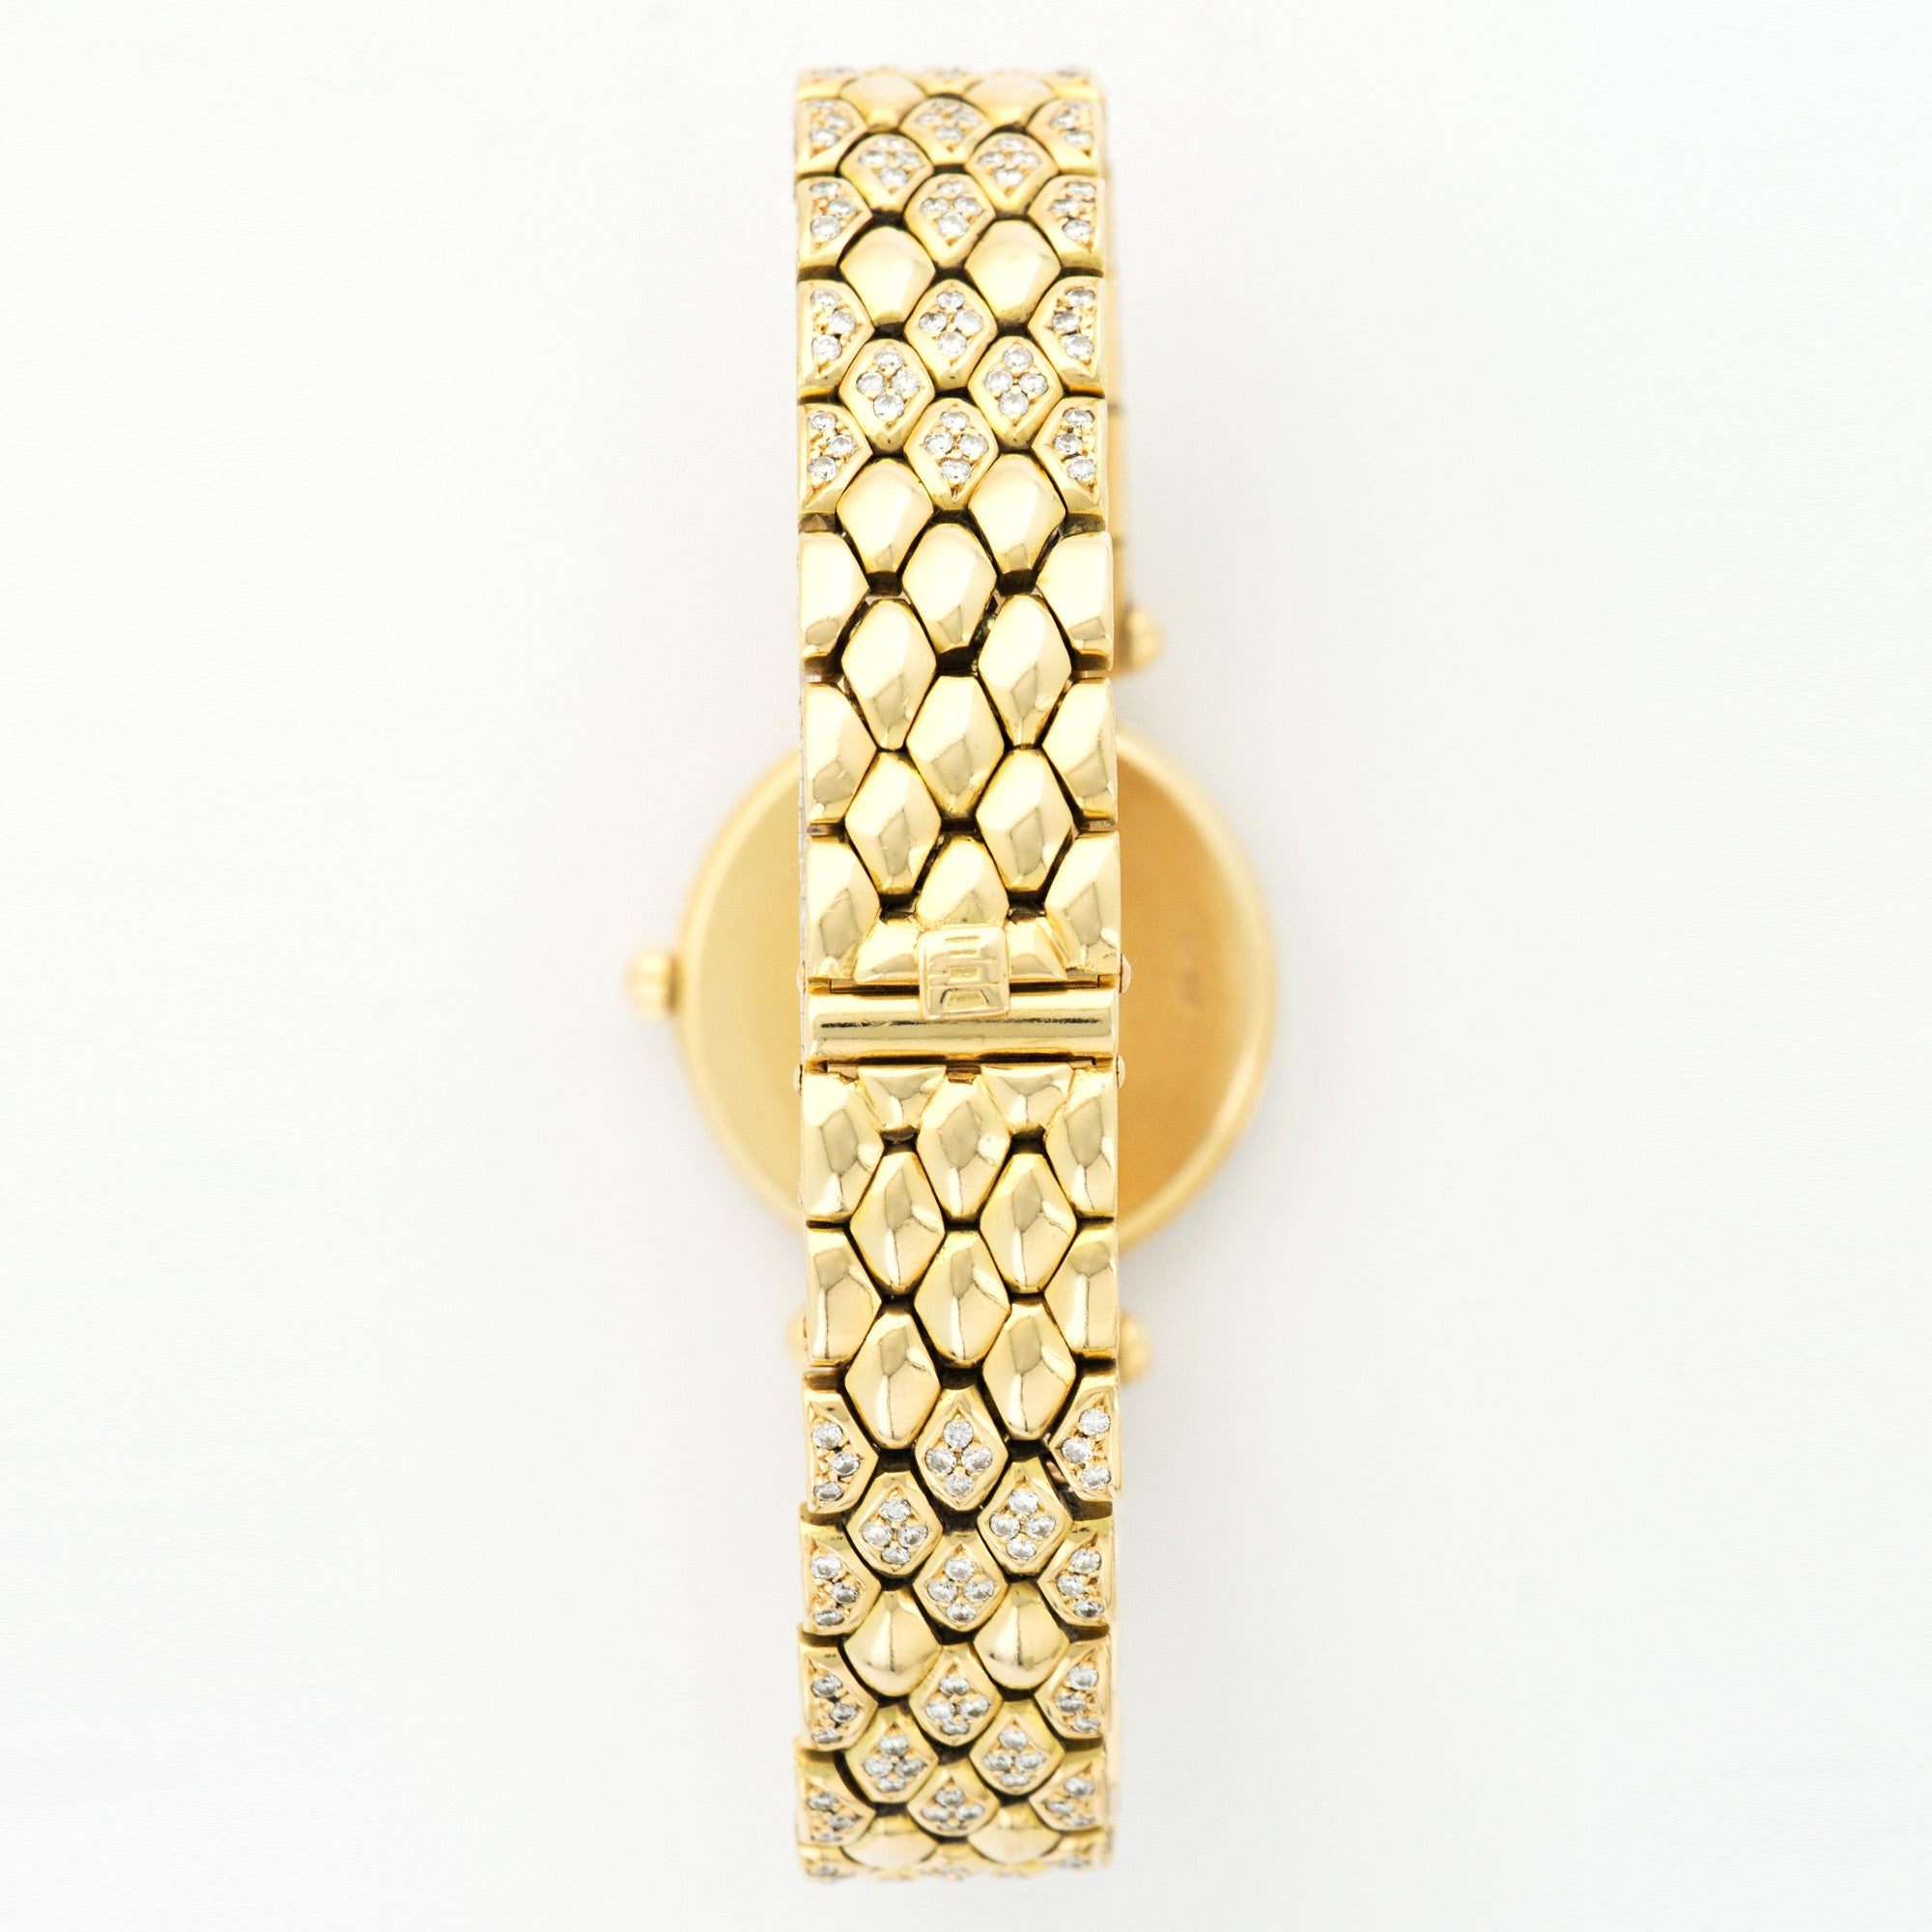 Van Cleef & Arpels Classiques 13607 18k YG  Excellent Ladies 18k YG White 24mm Quartz 2000s Yellow Gold Bracelet with Diamonds N/A